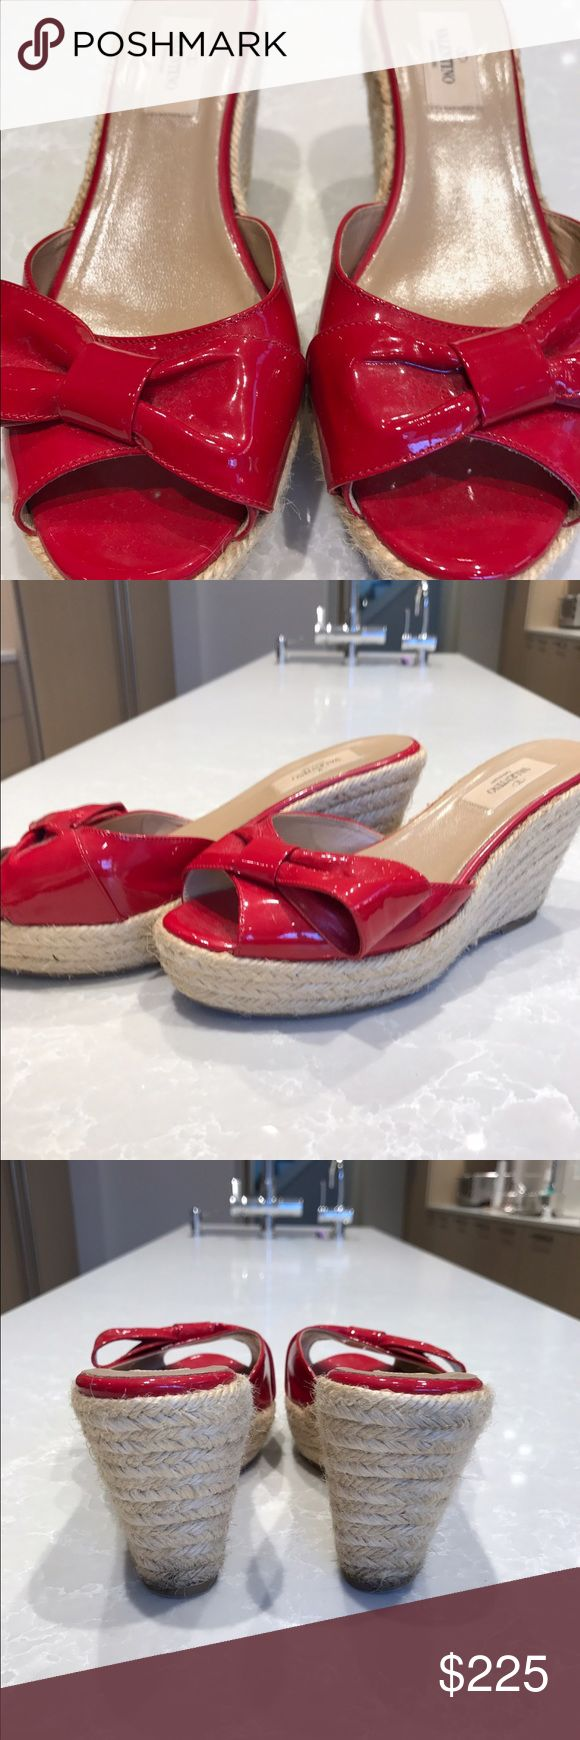 Valentino wedges Red patent leather Valentino slide wedges with bow accent at vamps and jute woven heels. Lightly warn 3.5 in wedge height Valentino Shoes Platforms